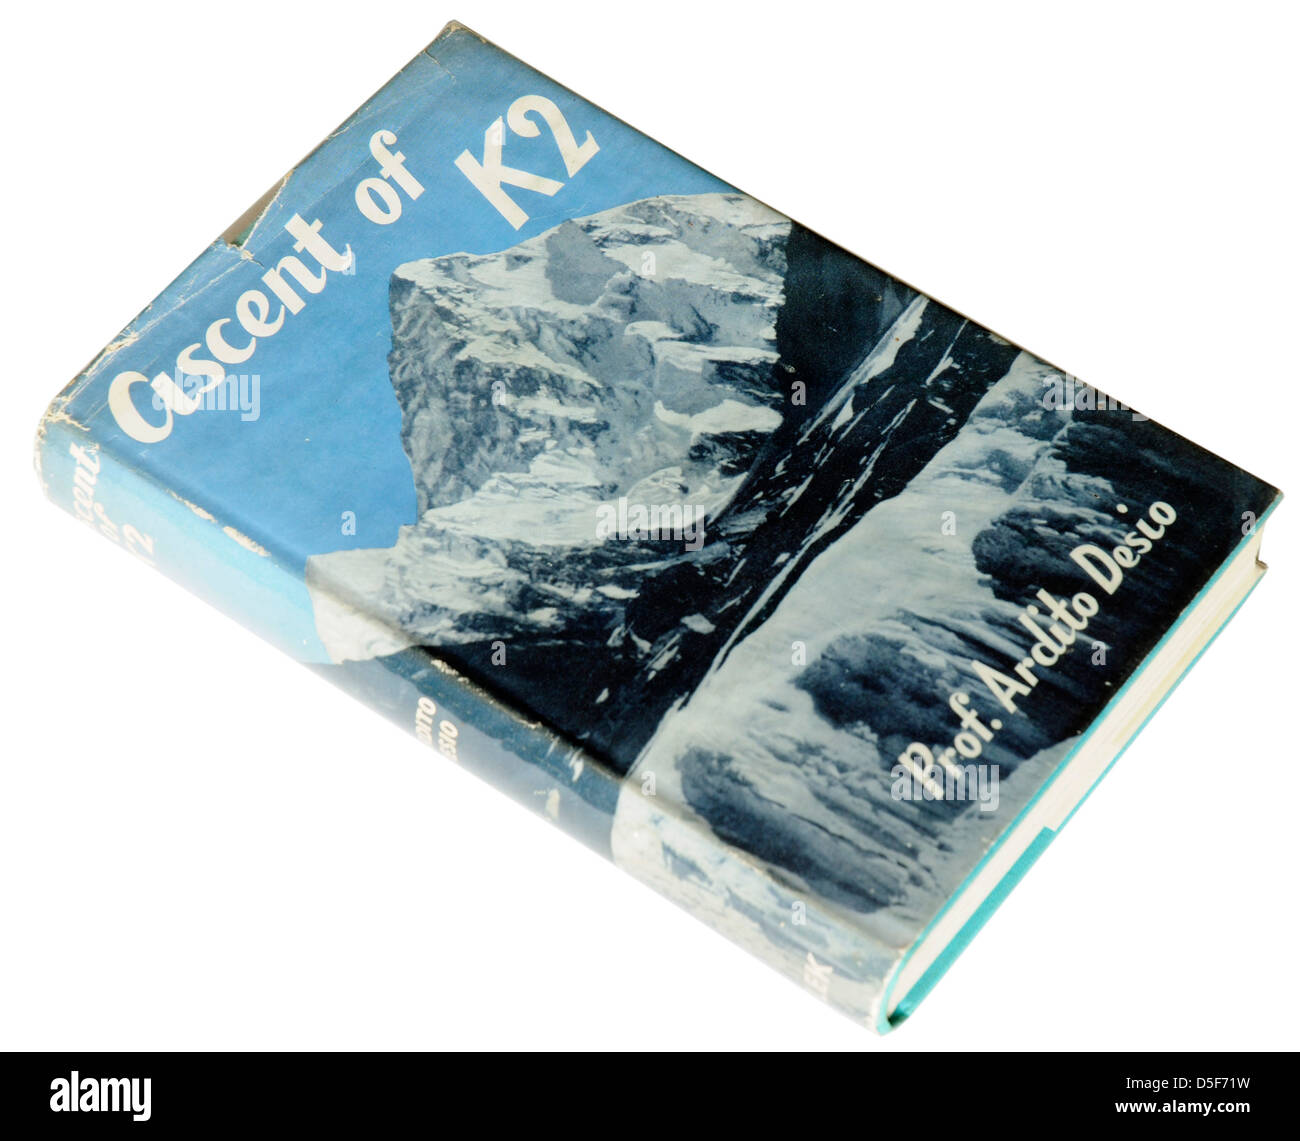 Ascent of K2 by Ardito Desio - Stock Image